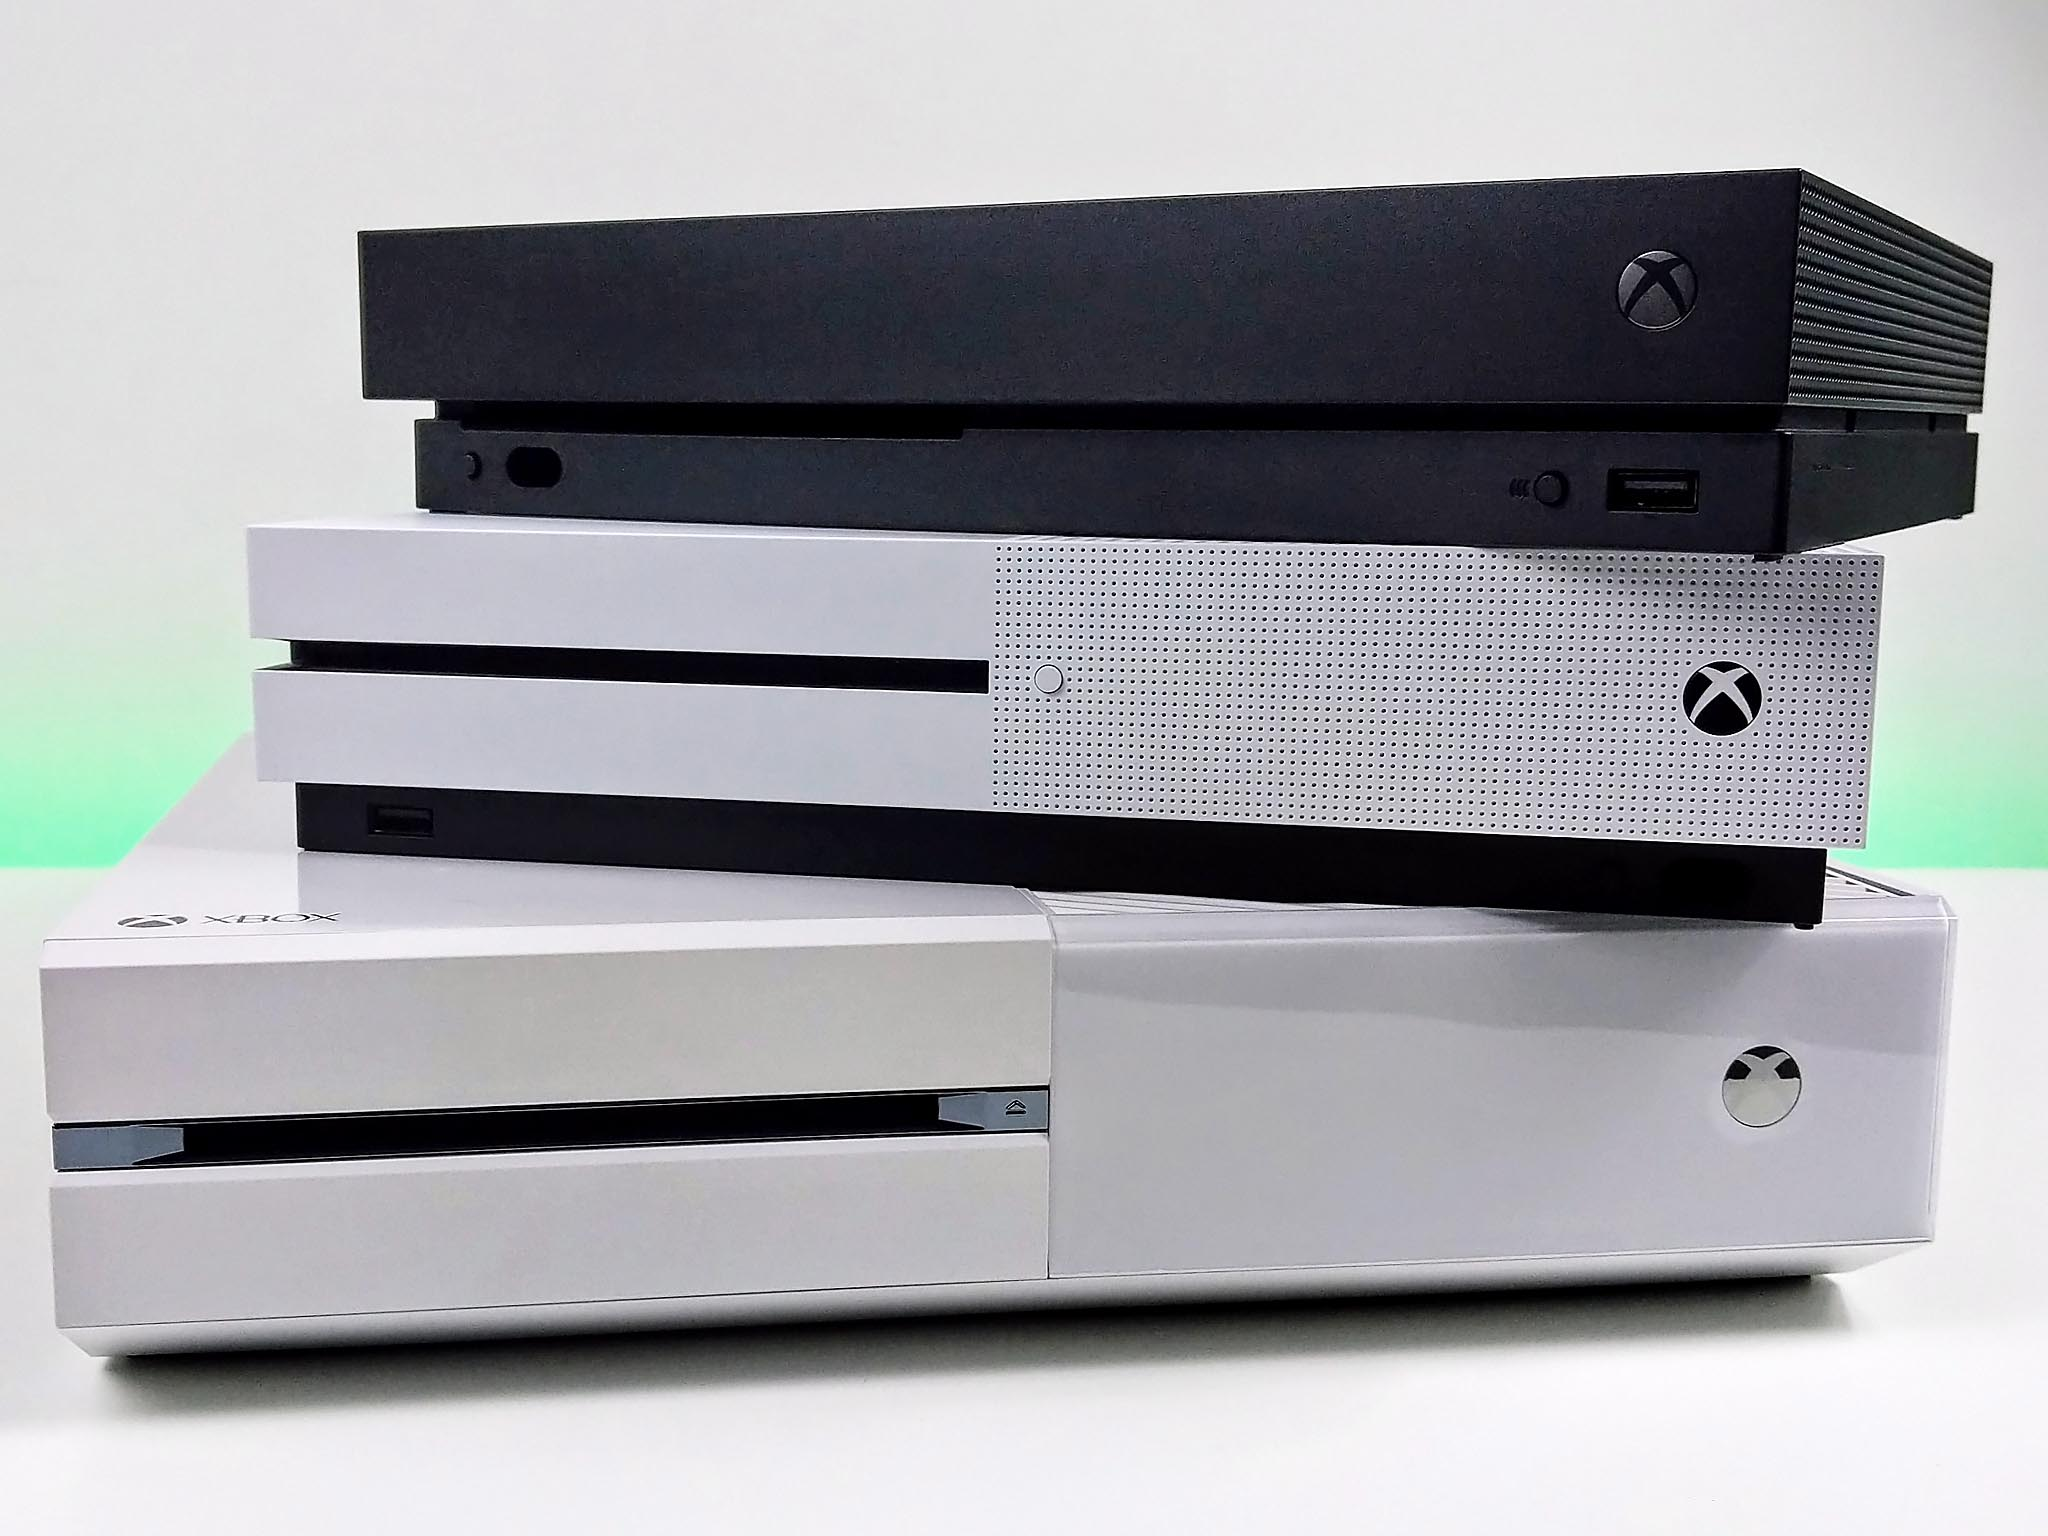 hight resolution of speaking of cooling the xbox one x is never blisteringly hot to the touch when